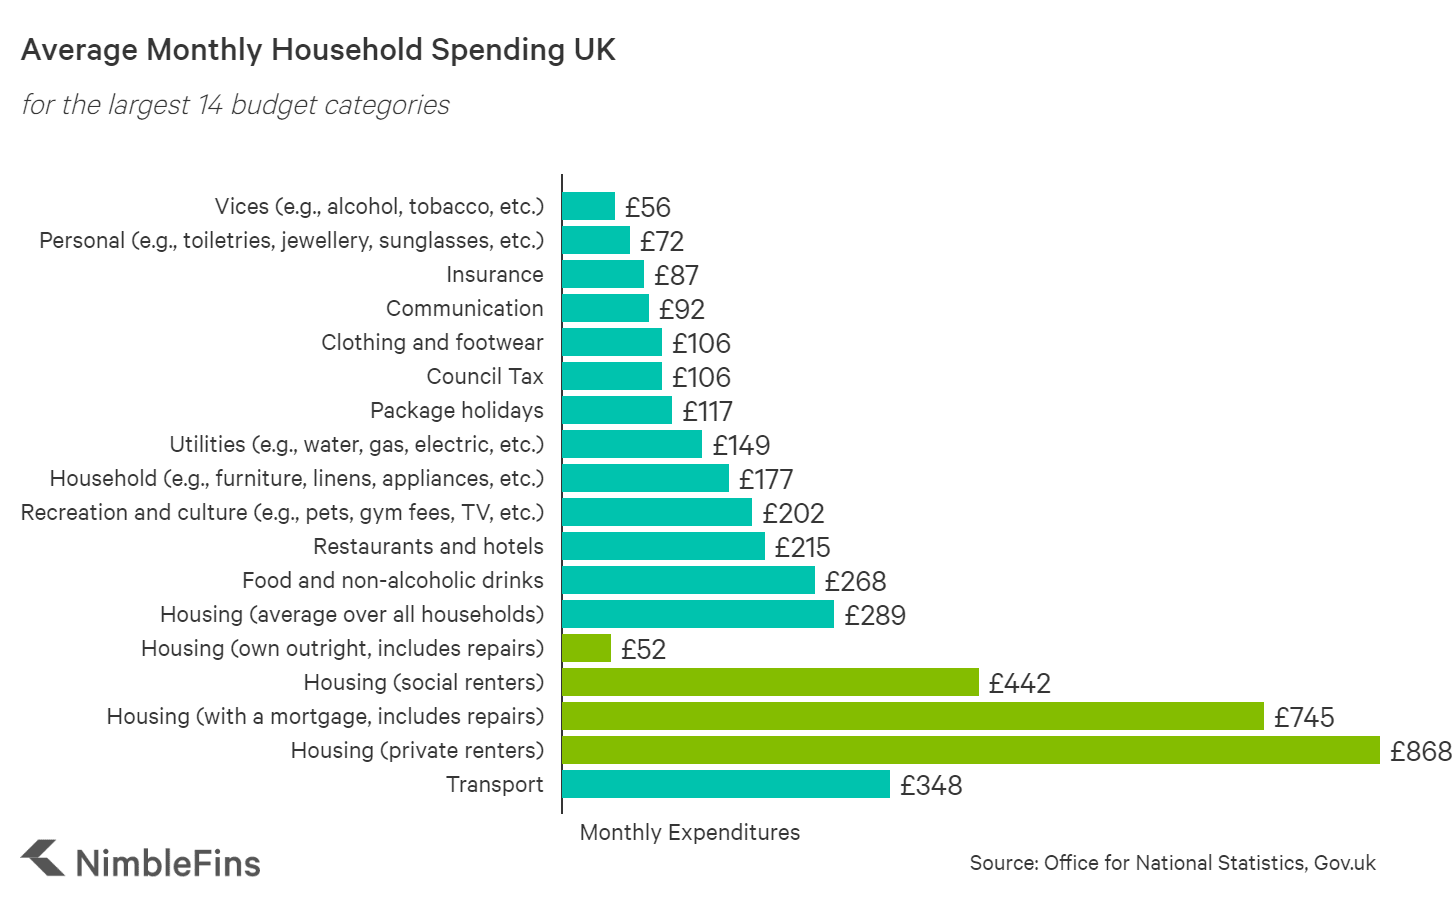 Chart showing average UK household spending on bills and expenditures